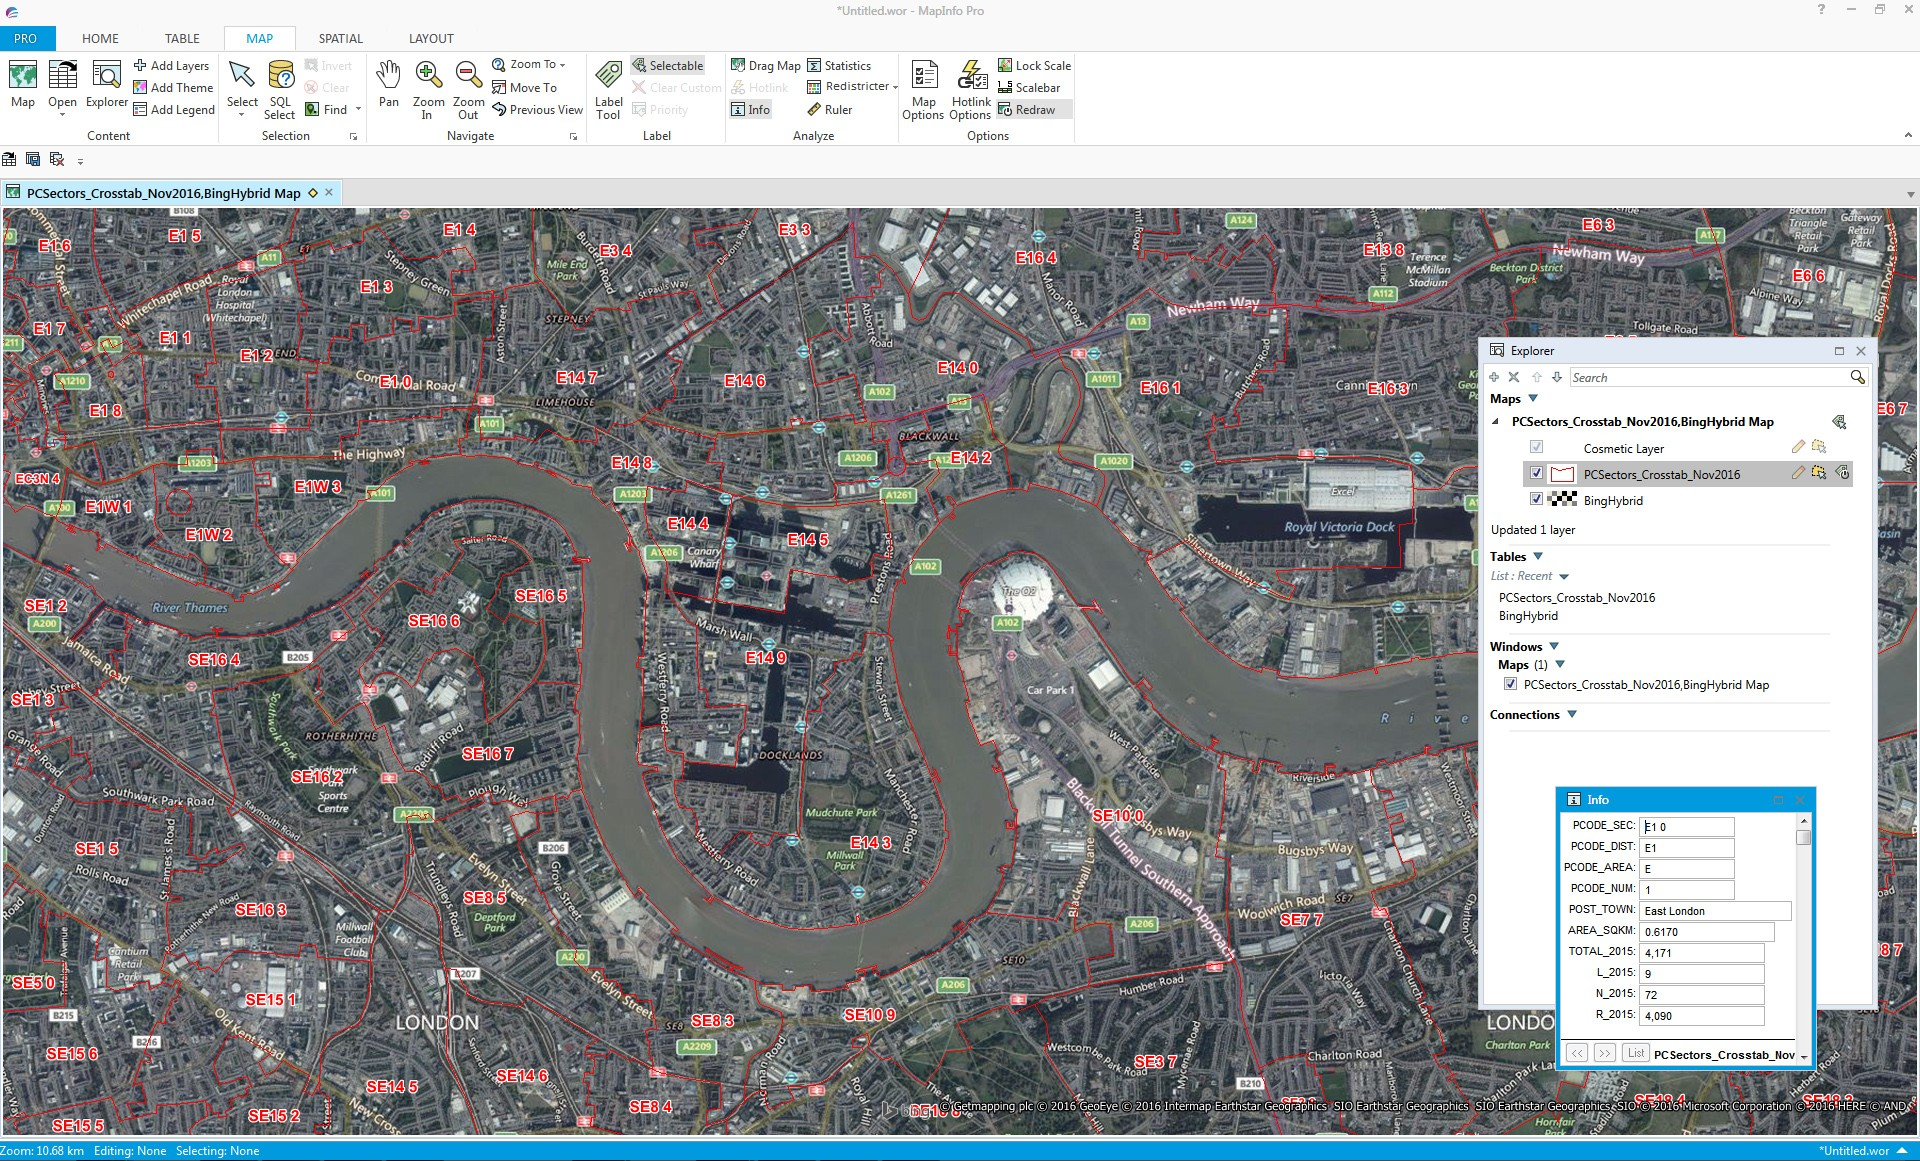 MapInfo Pro with Bing Image Map and XYZ Postcode Sectors